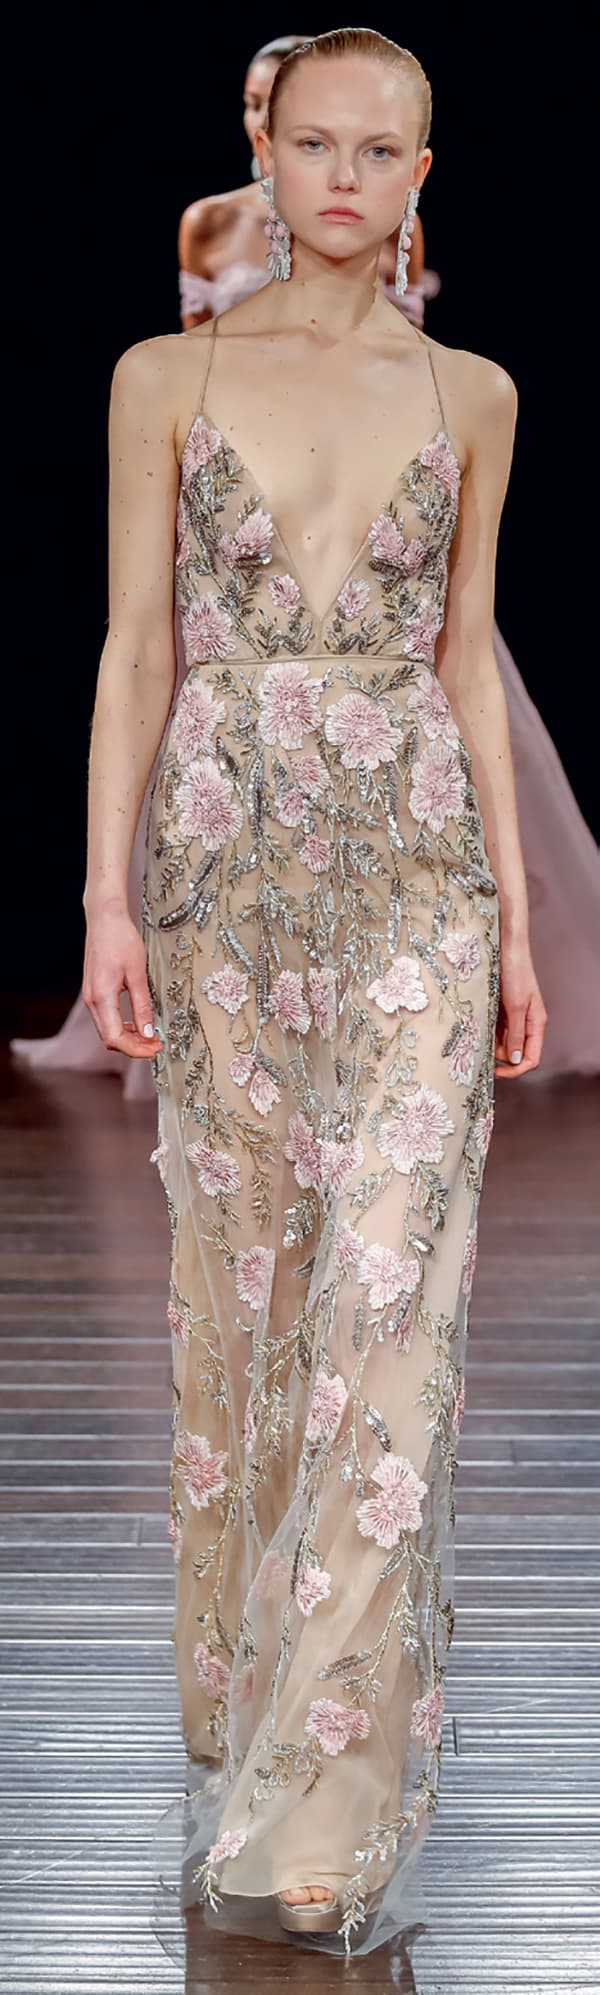 Sheer wedding gown with pastel pink embellished flowers from Naeem Khan.